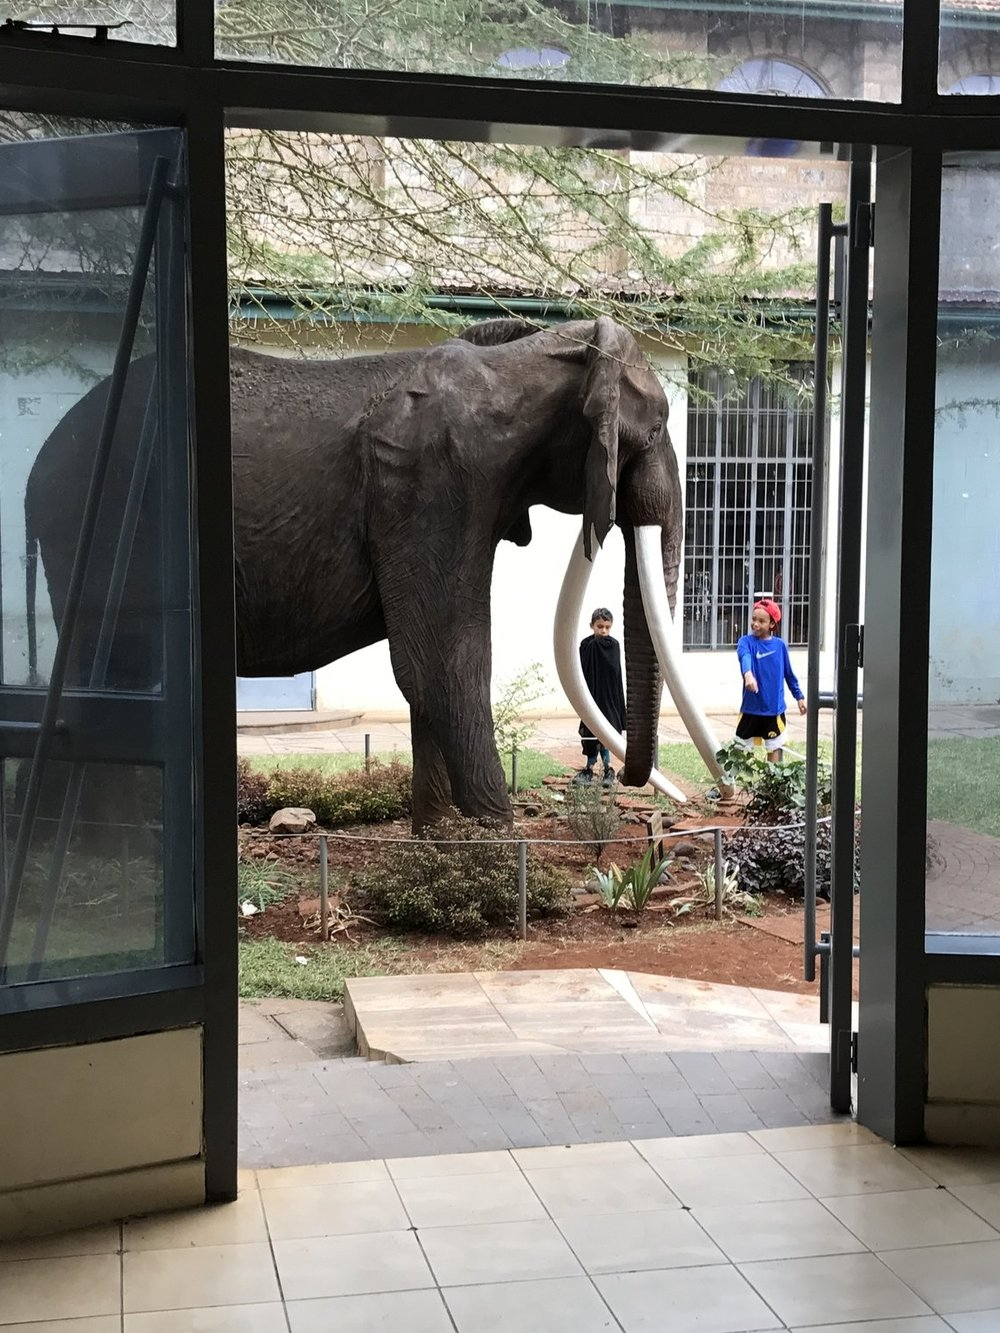 12) Lifelike elephant in museum courtyard